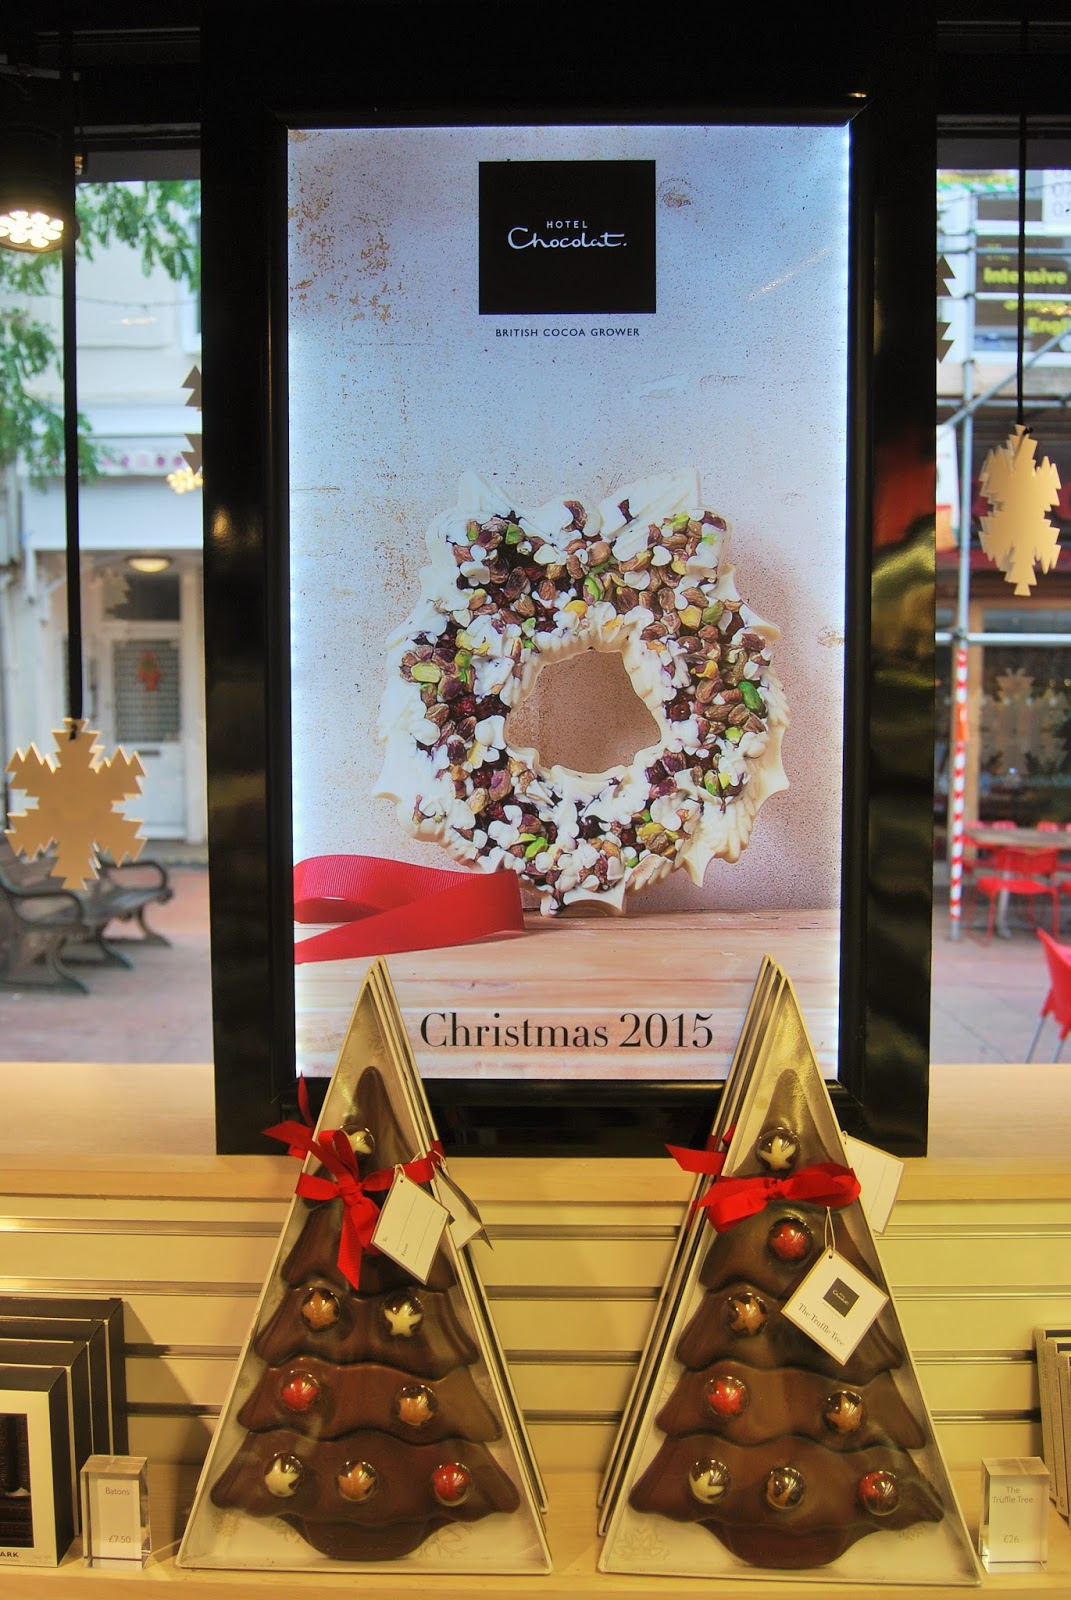 Inside Brighton shop, Hotel Chocolat Christmas Cracker Giveaway, photo by Modern Bric a Brac